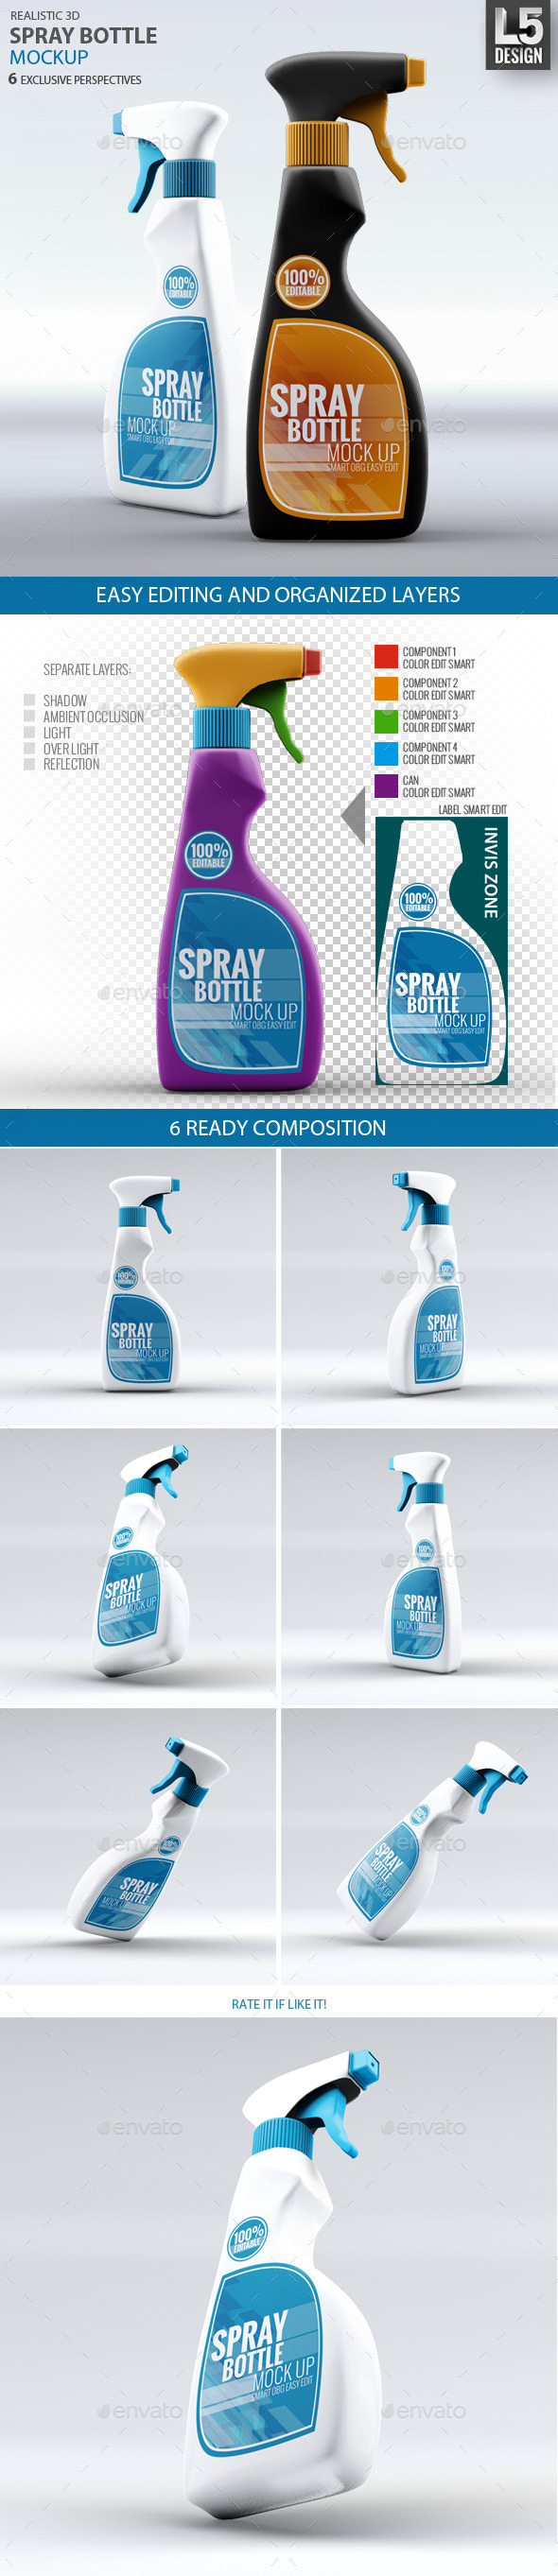 GraphicRiver Spray Bottle Mock-Up 9250588